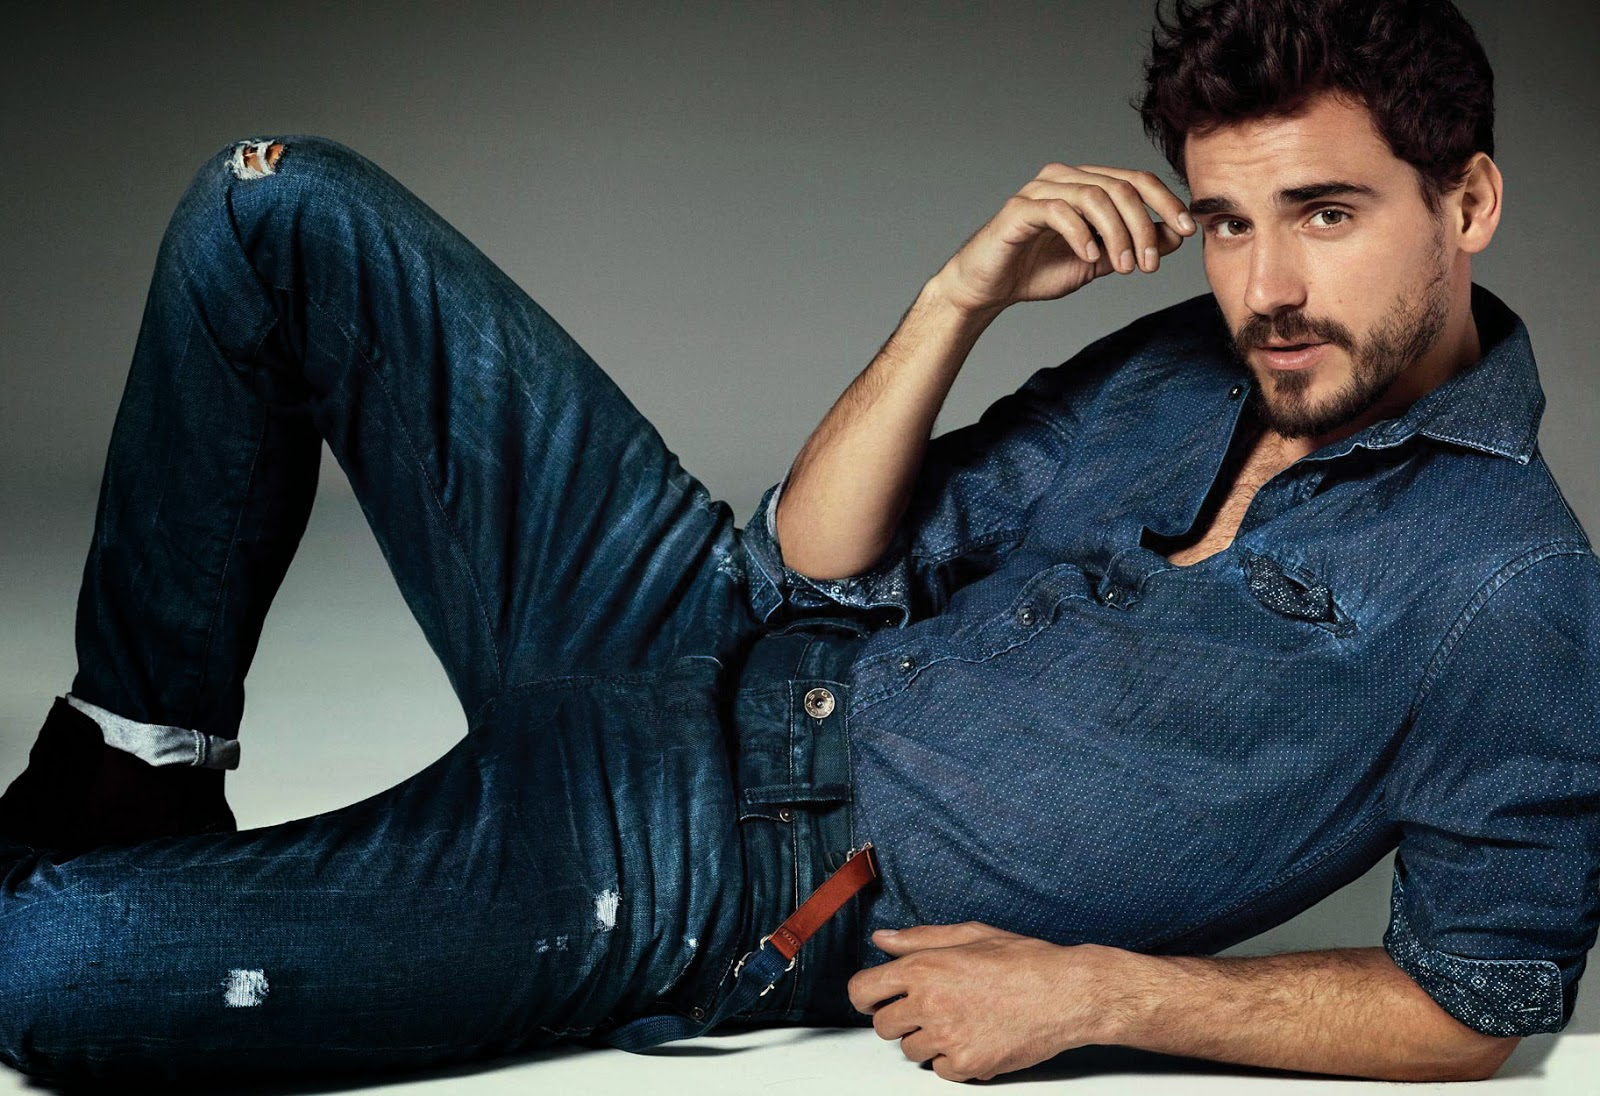 Top 10 Male Models: What does it take to be a top ten male model?